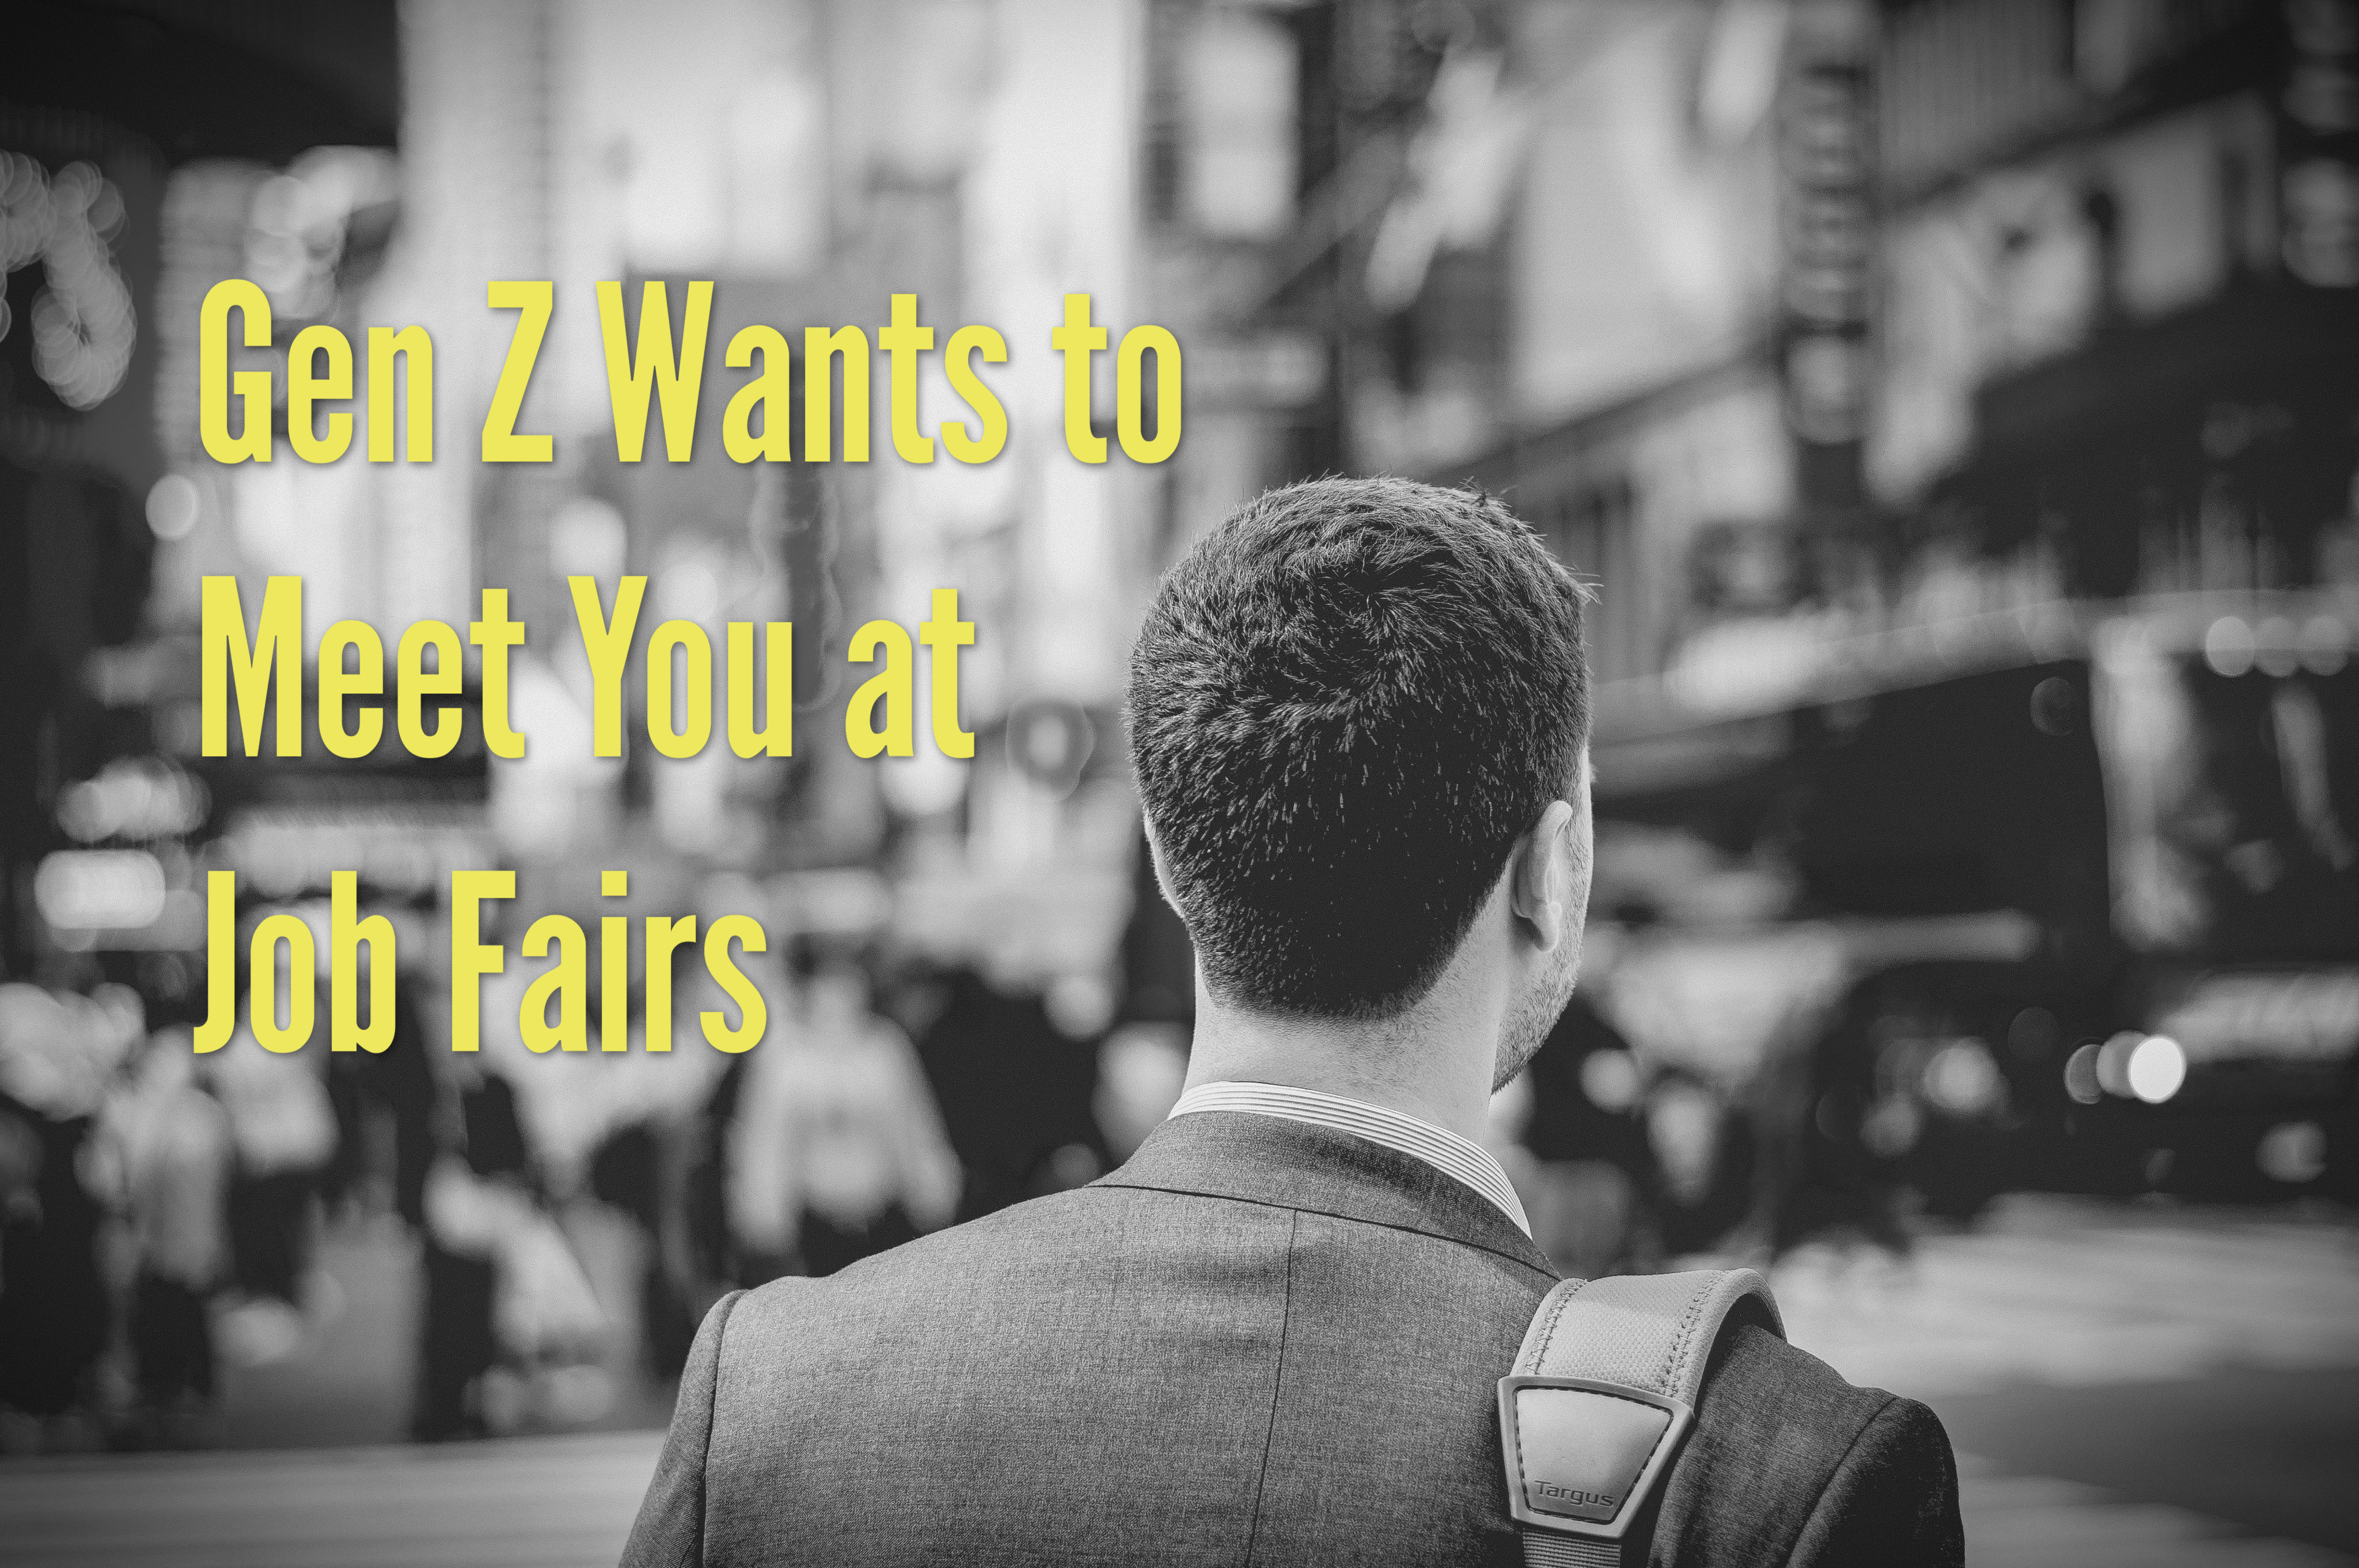 Gen Z Wants to Meet You at Job Fairs